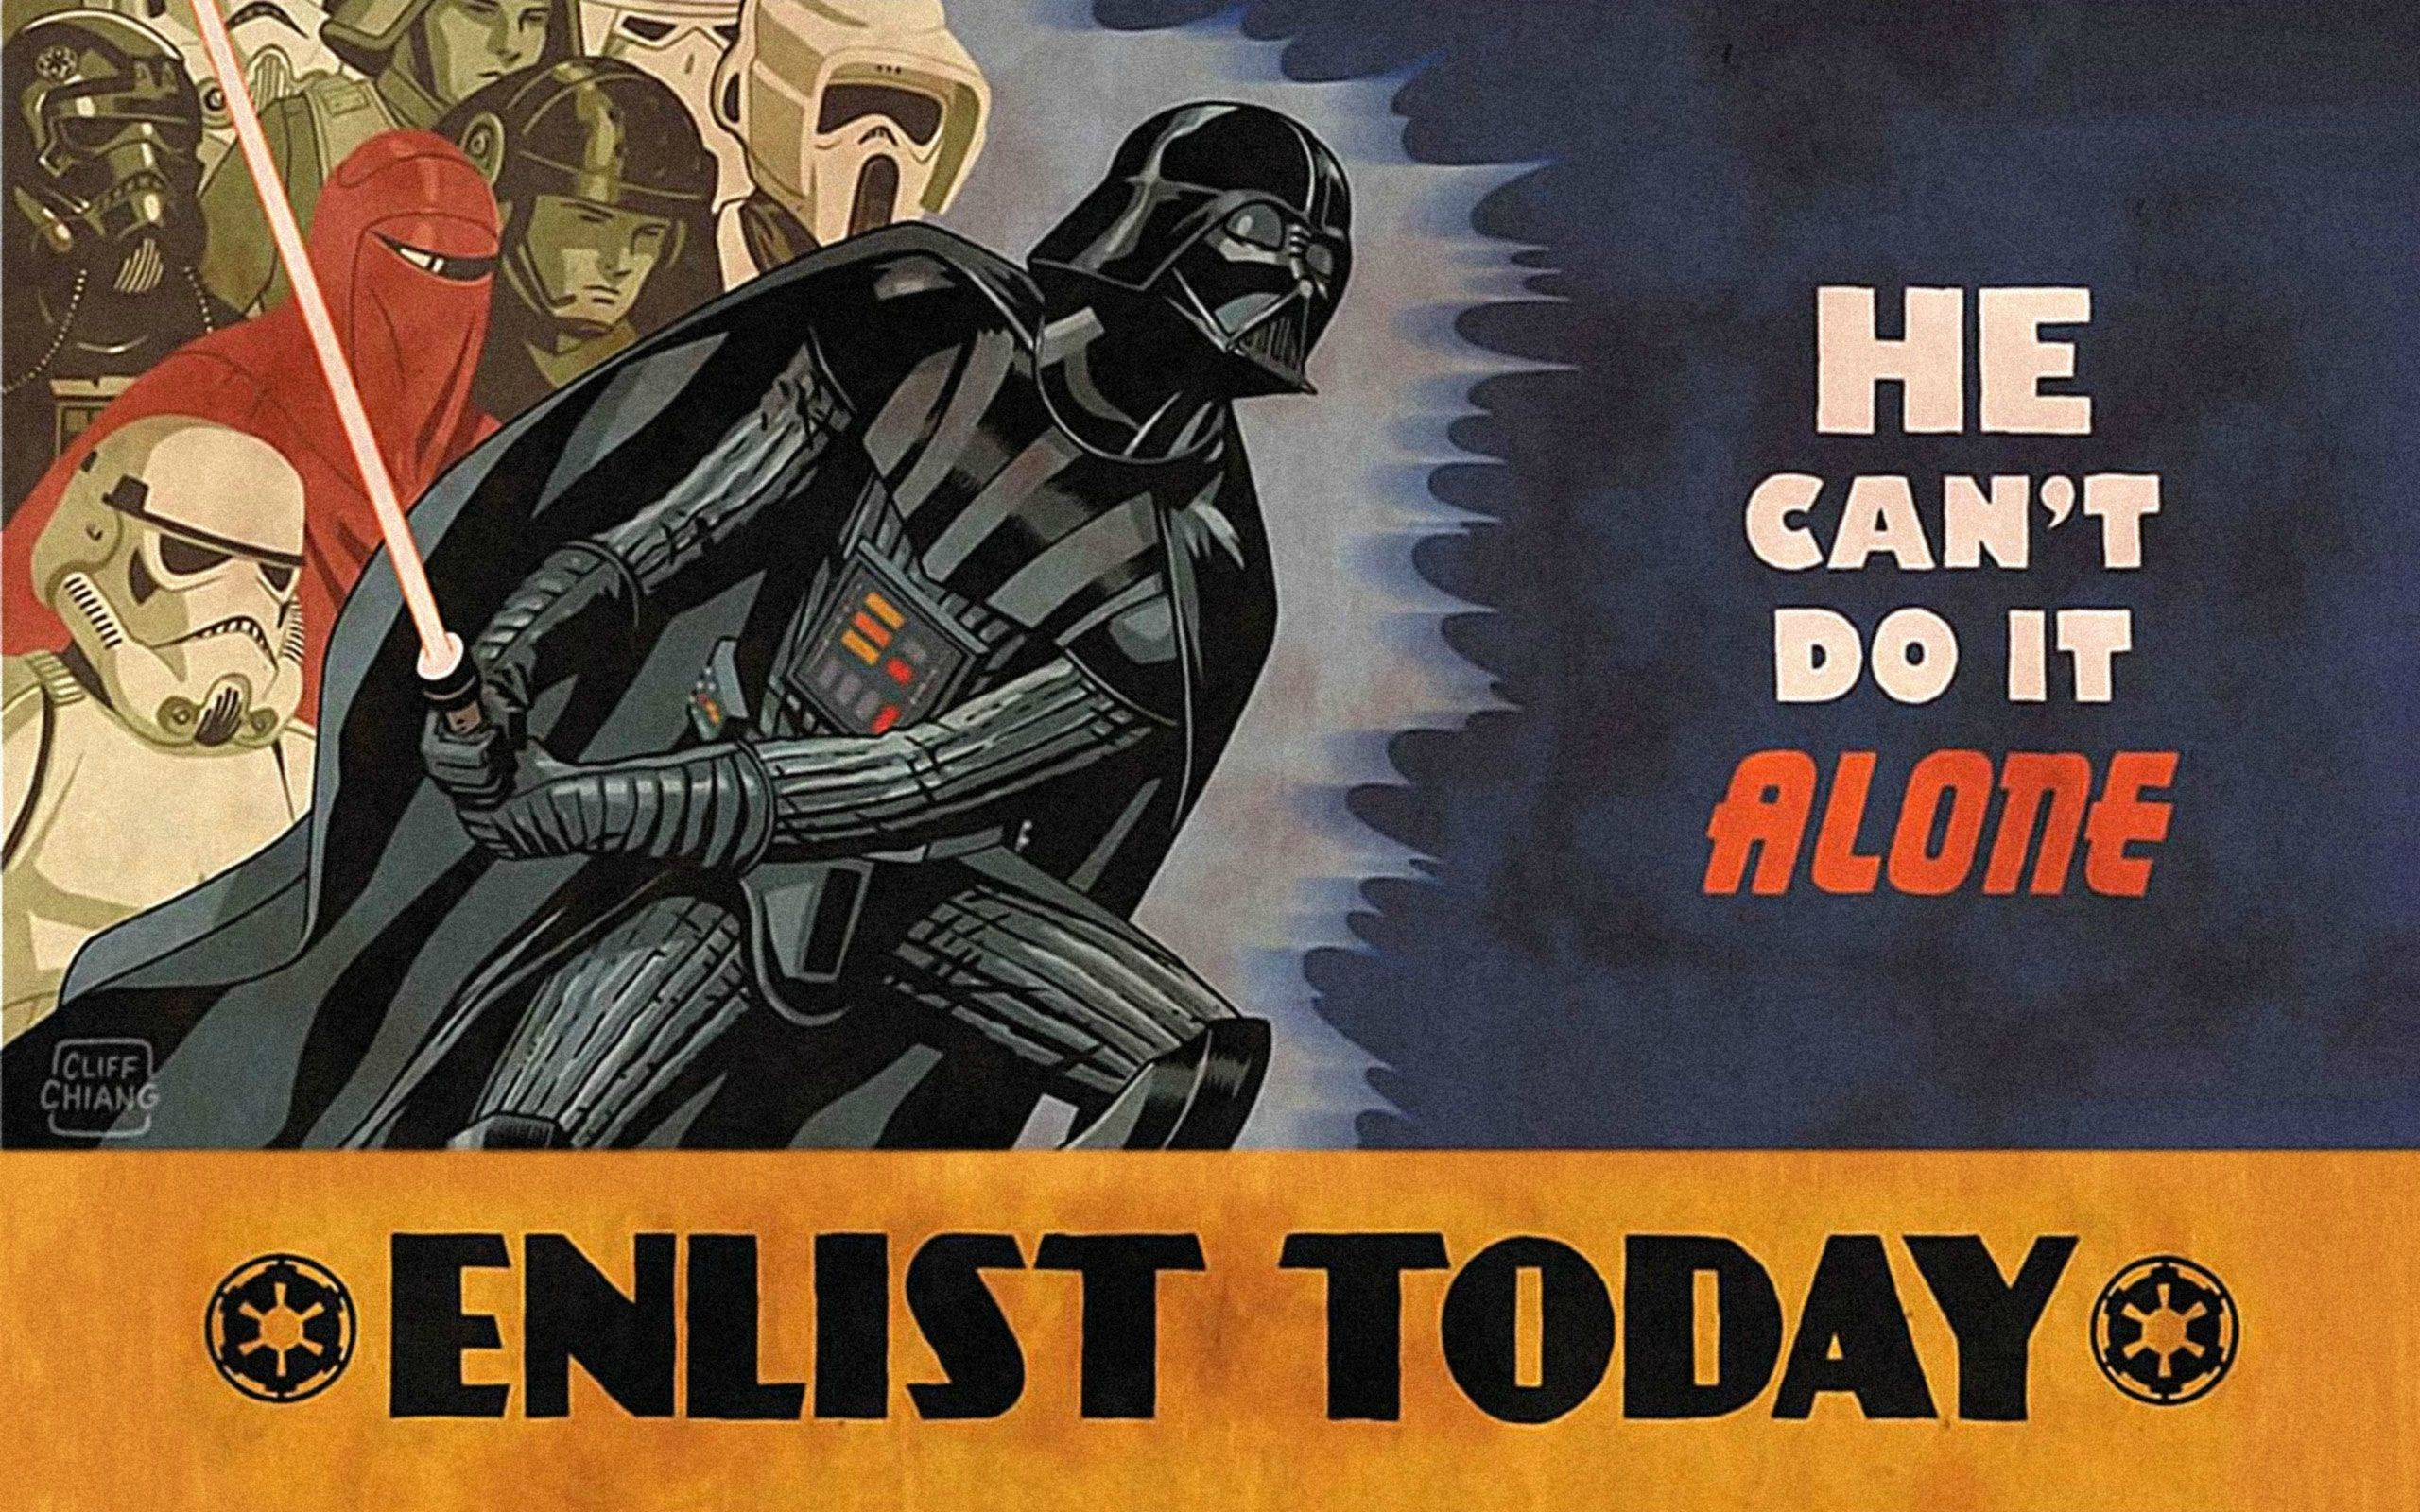 Pro-empire-enlist-today-he-needs-you.jpg